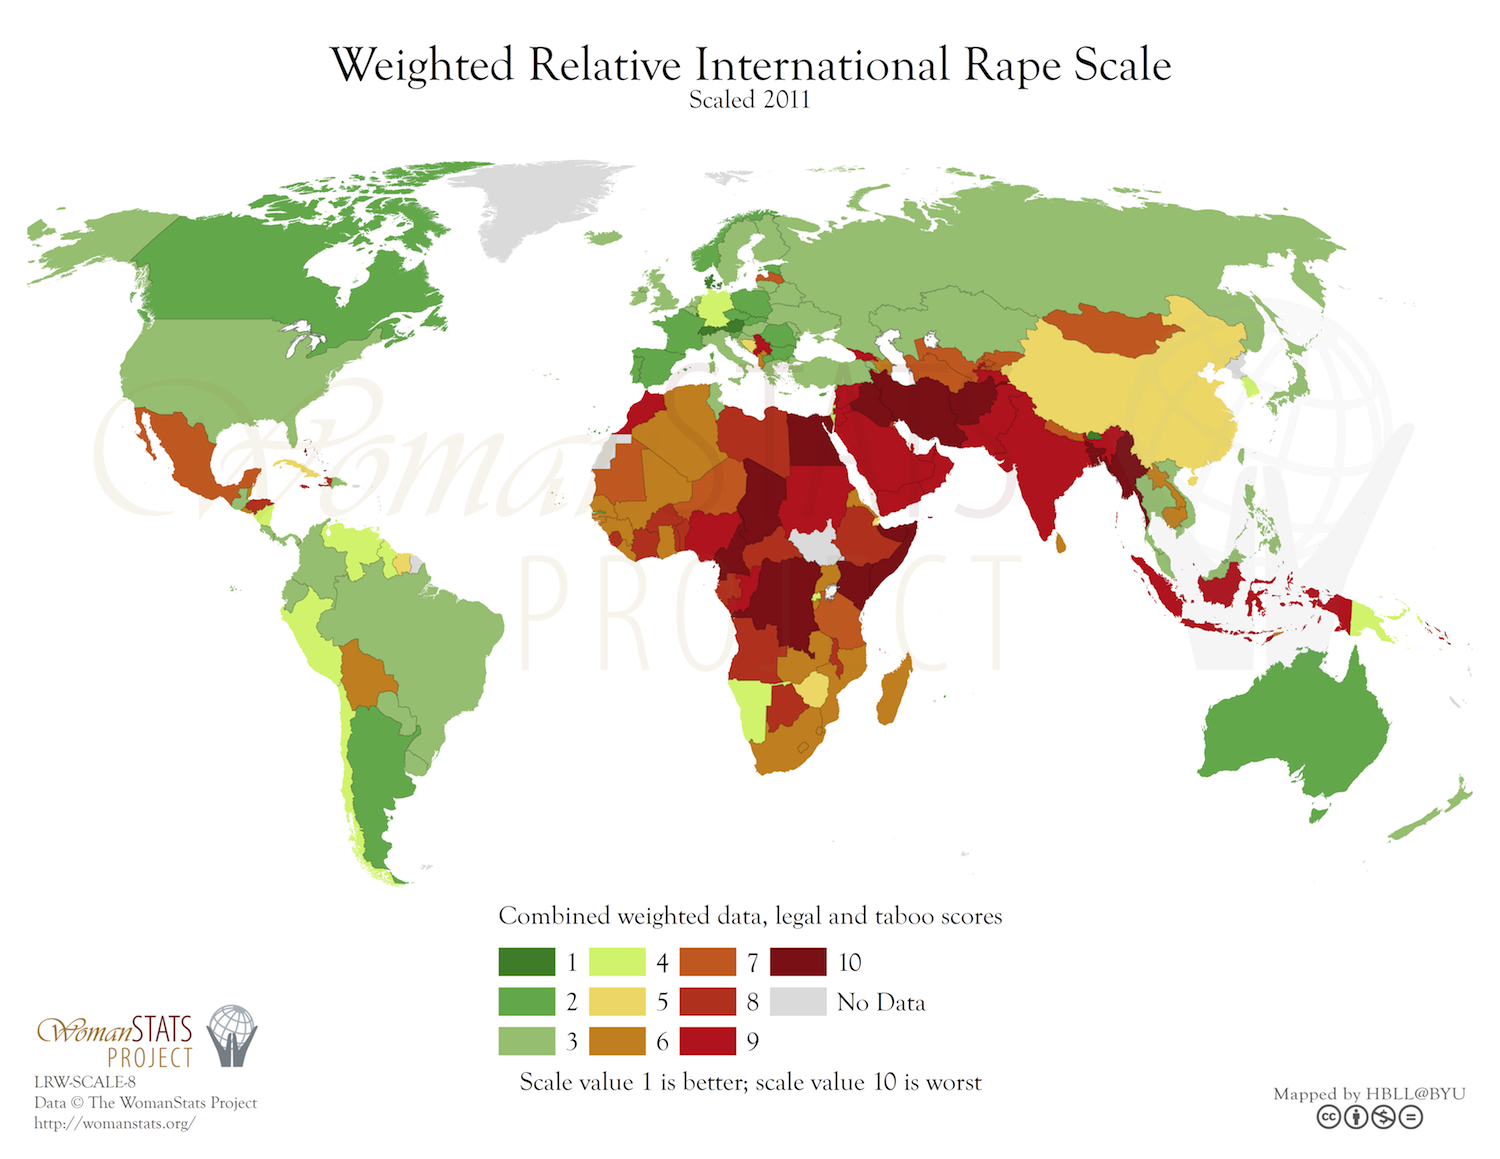 31 best maps on womens issues images on pinterest maps cards and can you say rape epidemic see who rapes the most weighted relative international rape scale 2011 coming to your neighborhood if sharia law gets in gumiabroncs Images